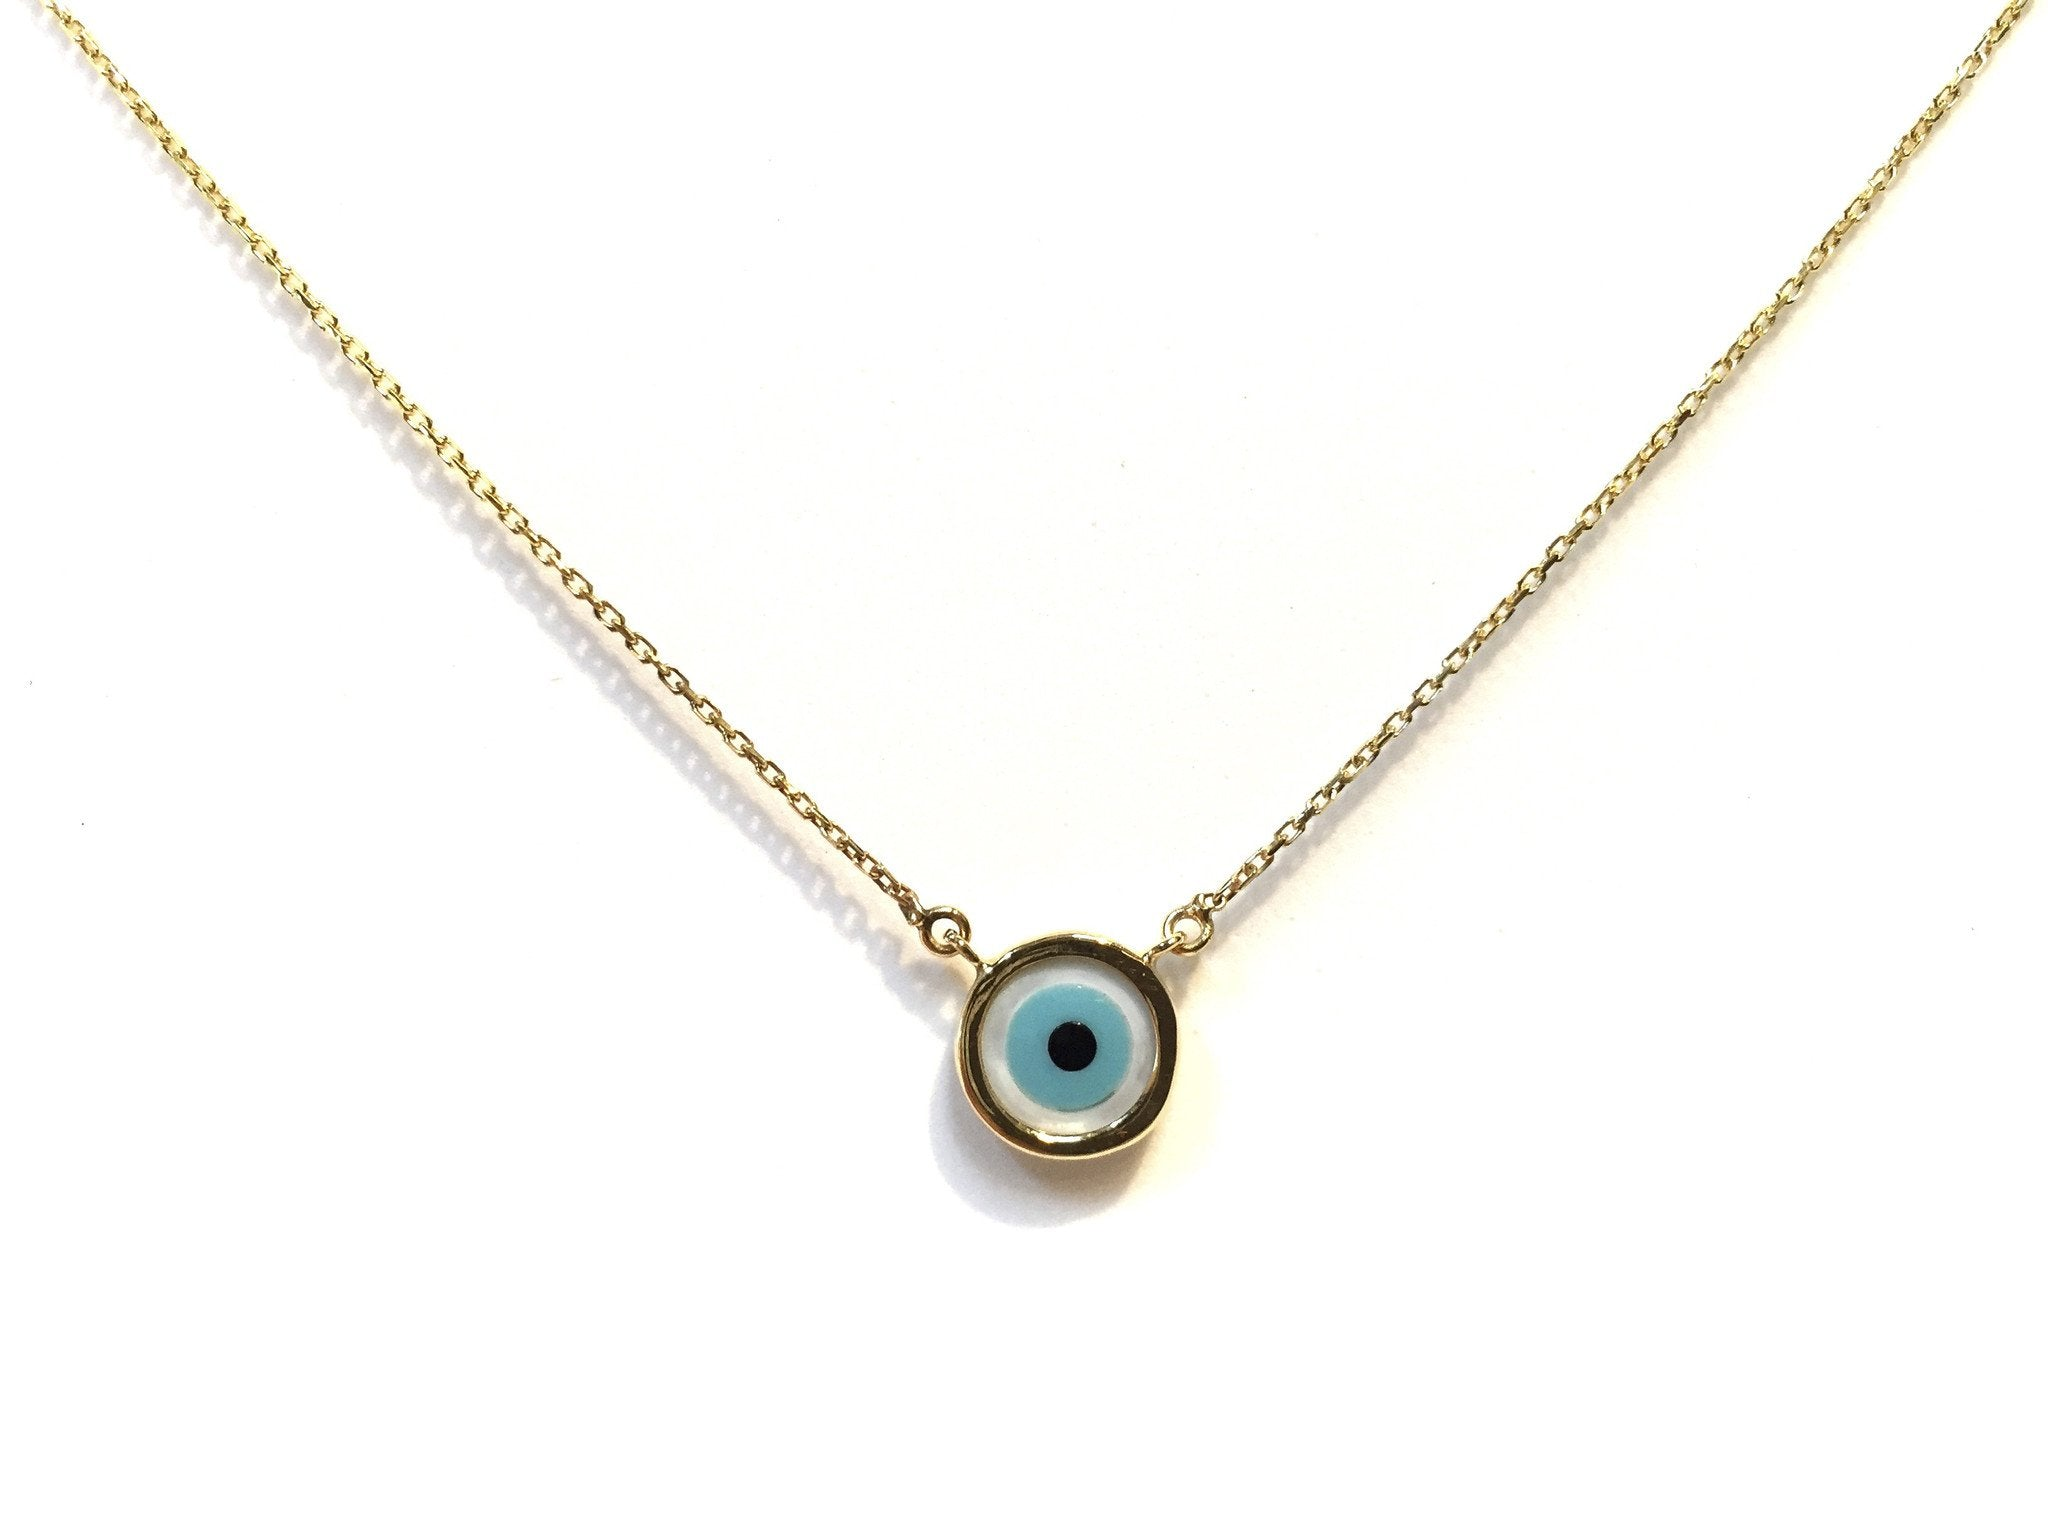 sphera copy necklace eyes collections eye milano evil adama rose